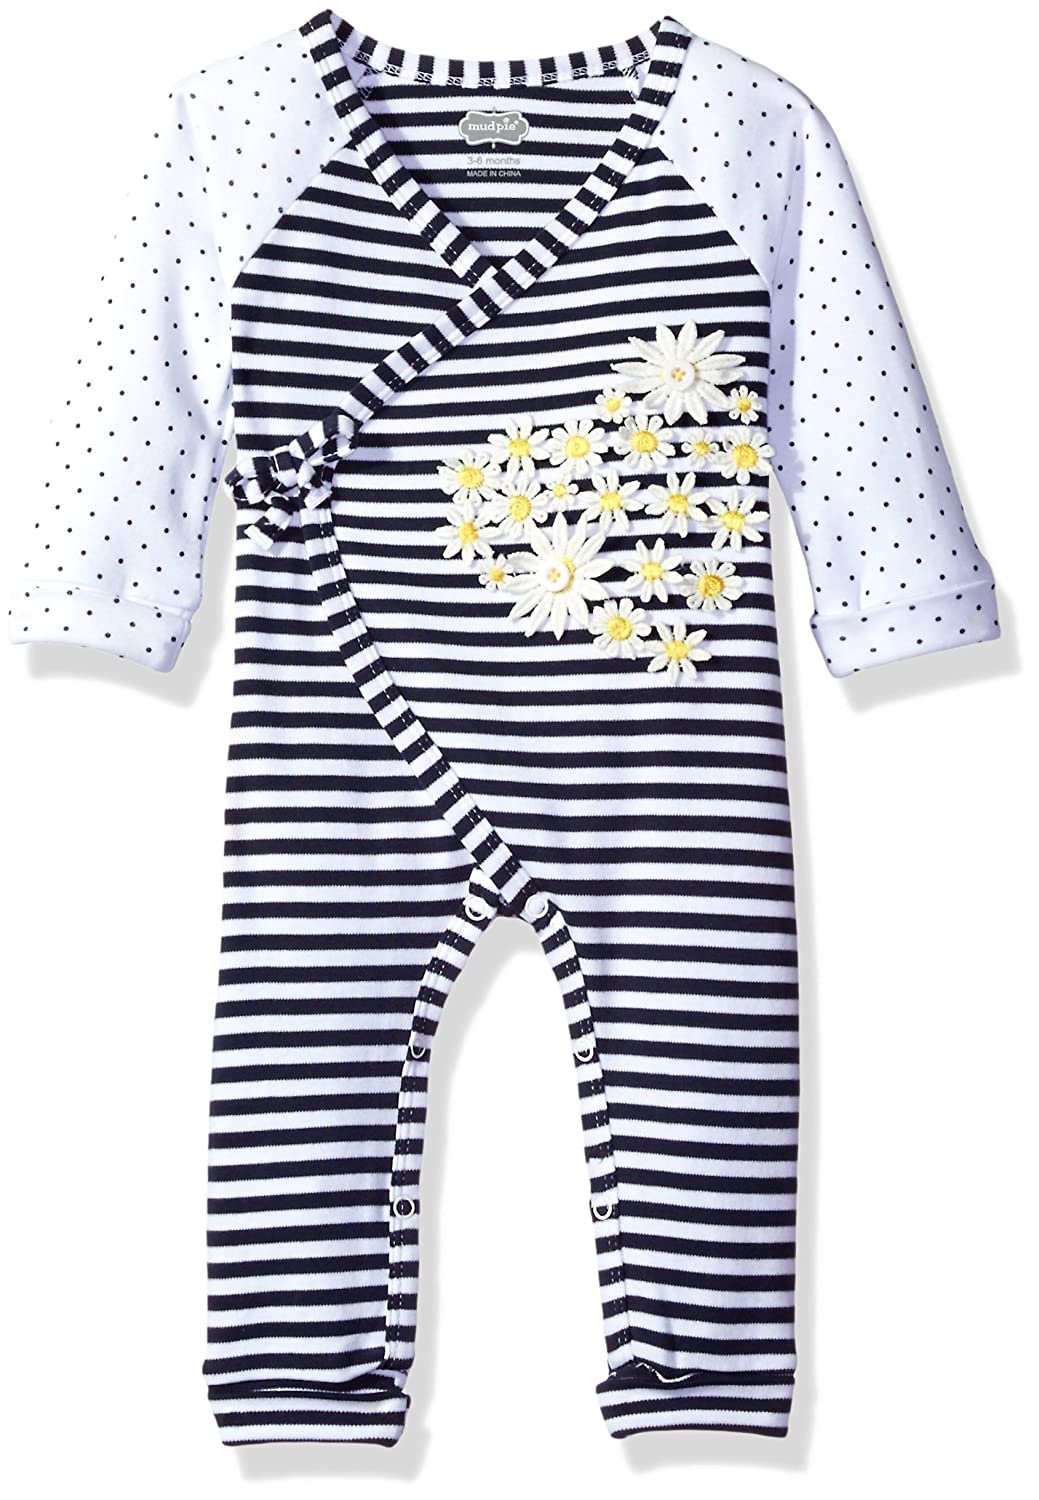 49650b520 Online Cheap wholesale Mud Pie Baby Girls One Piece Playwear Outfit Rompers  Suppliers